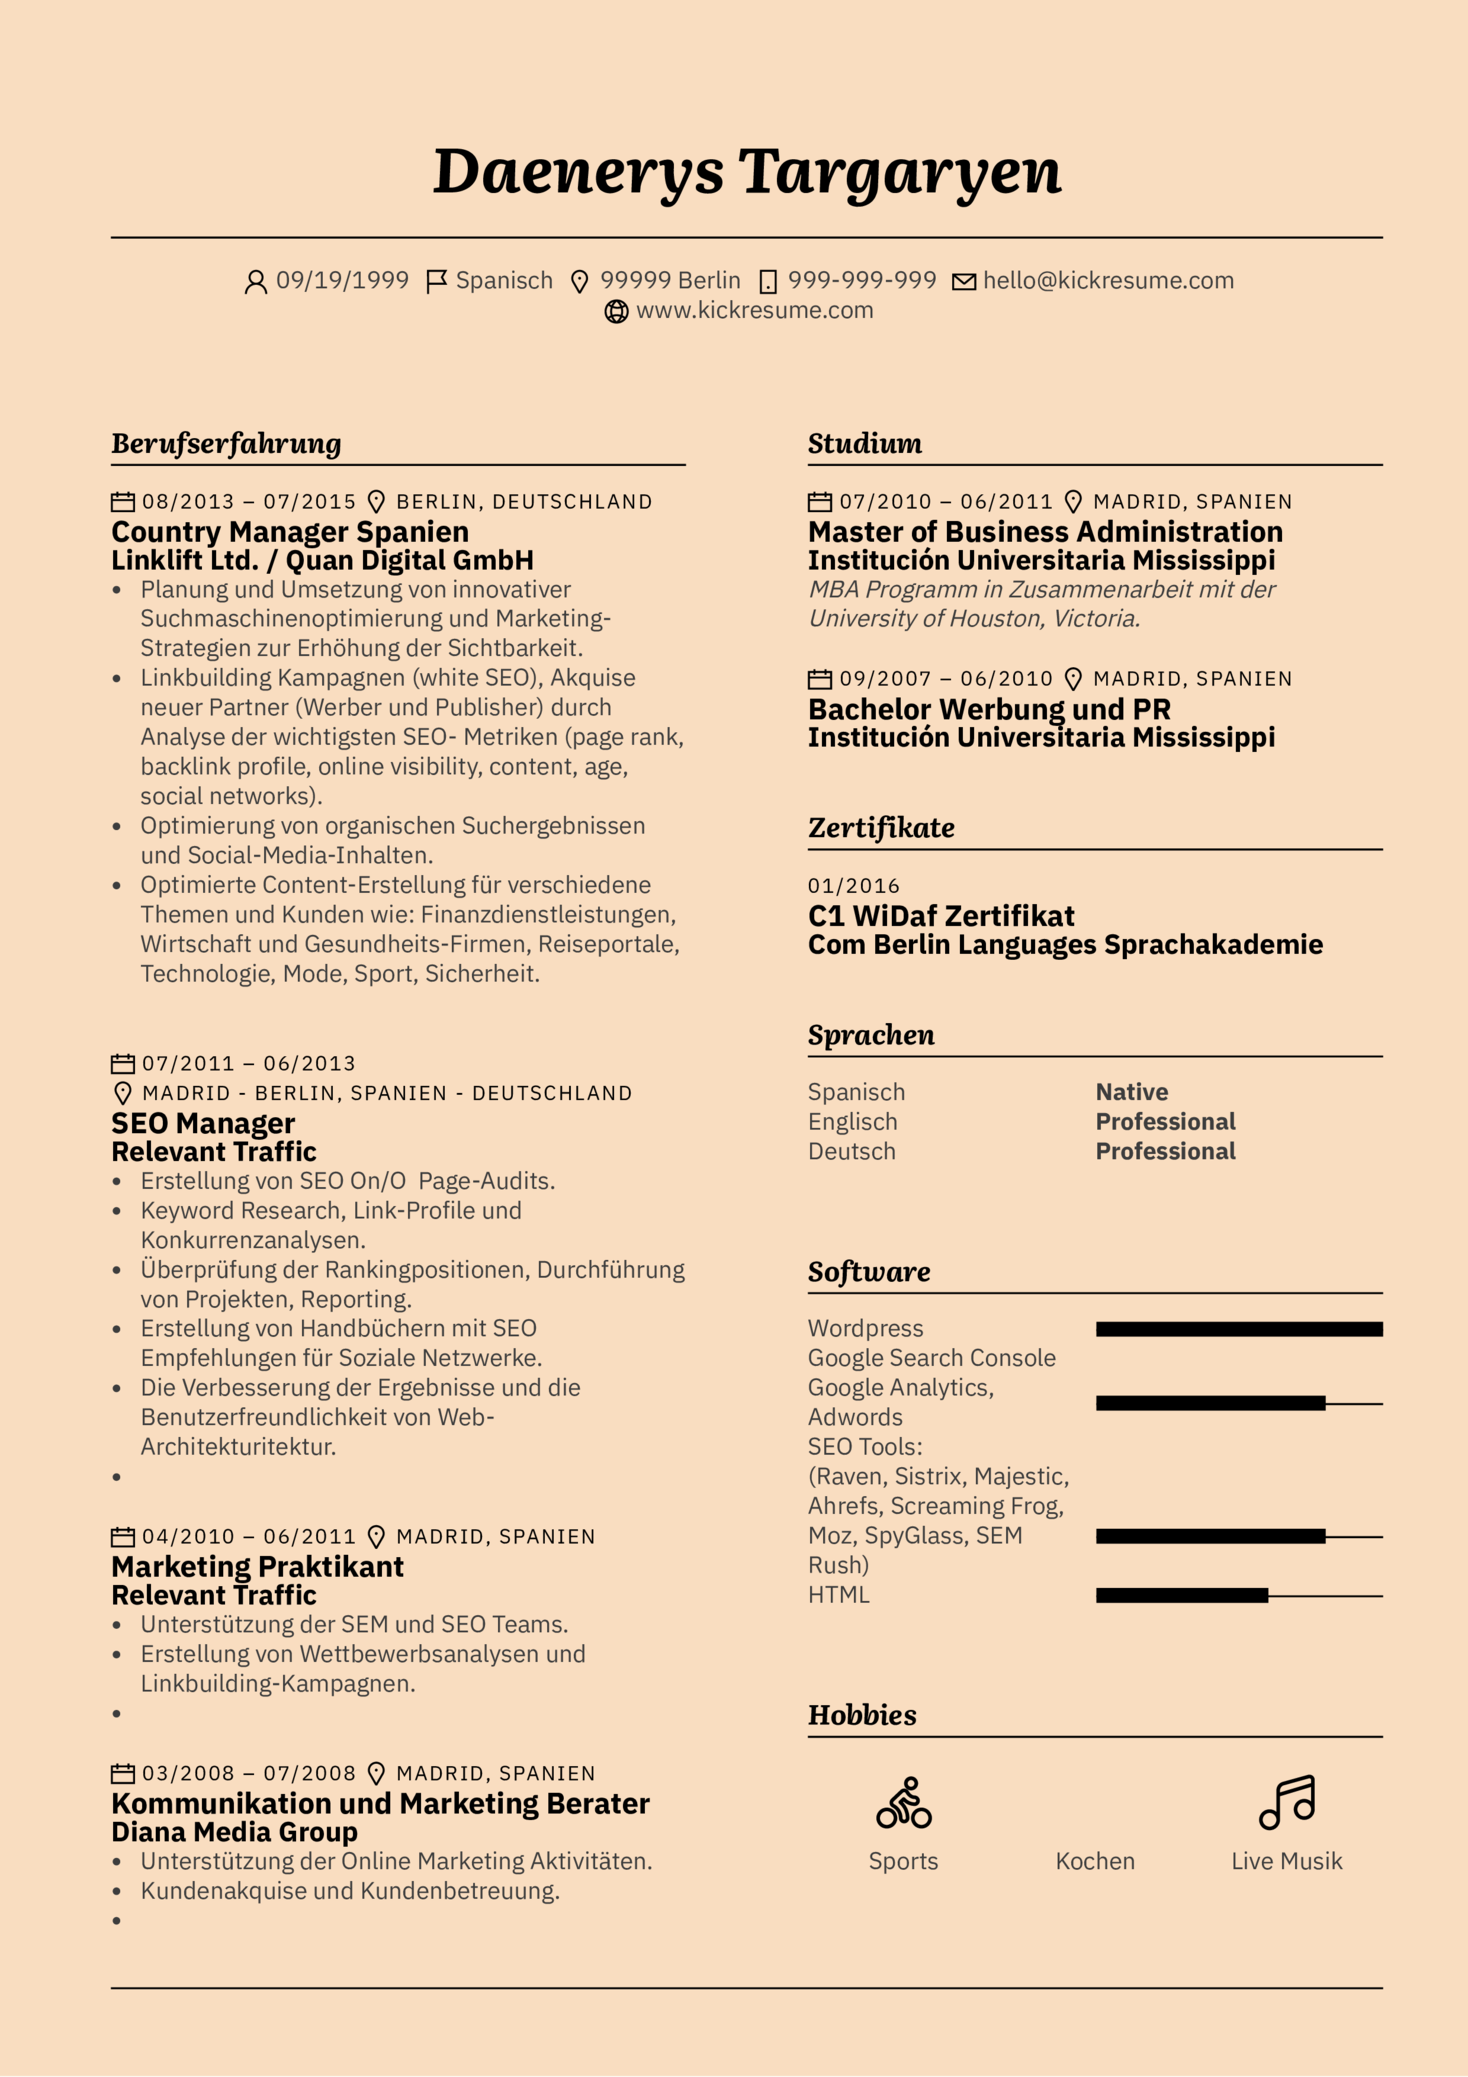 Customers Support Assistant Resume Sample (german) (parte 1)